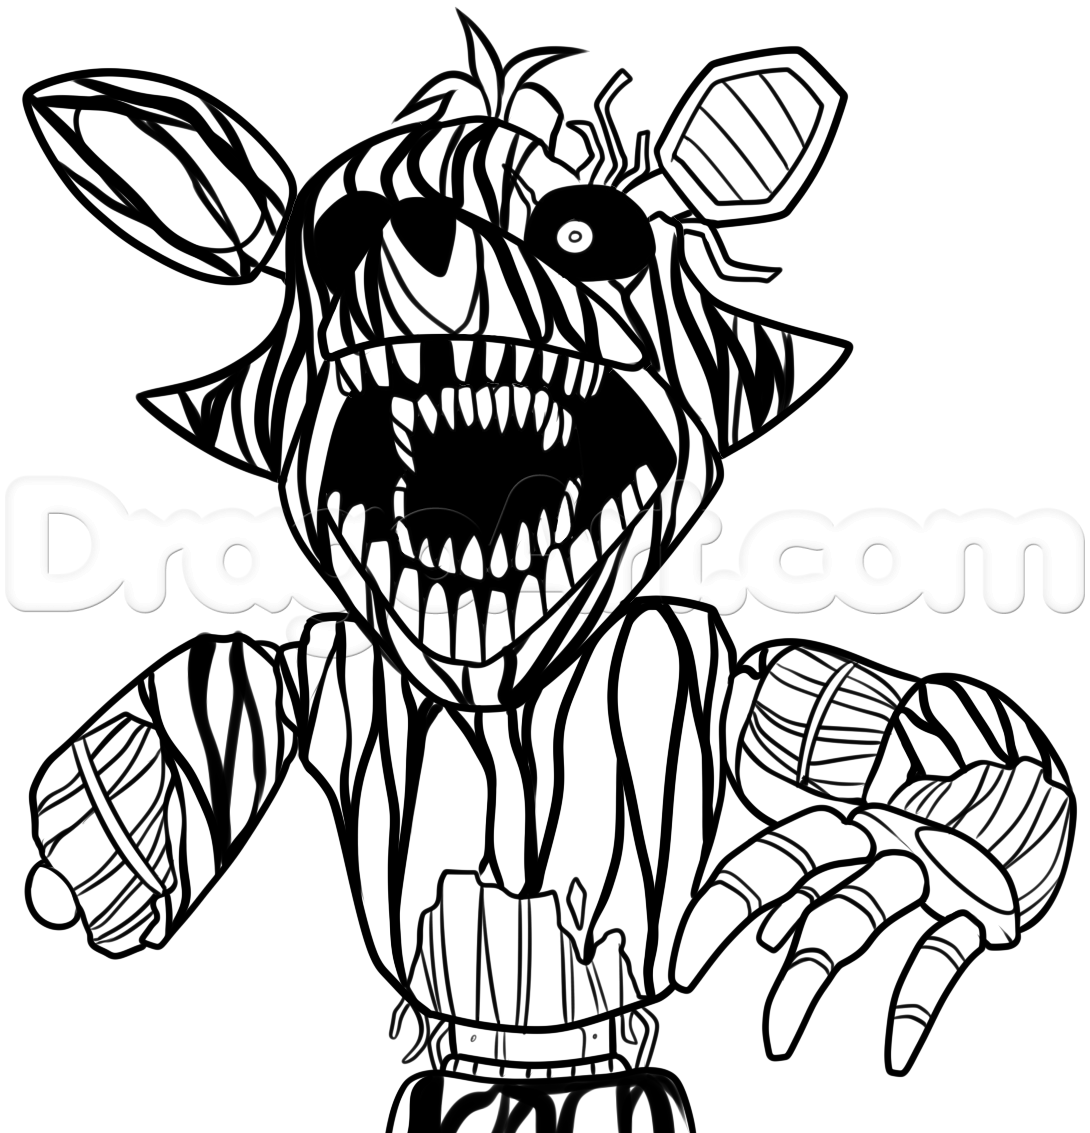 how to draw phantom foxy from five nights at freddys 3